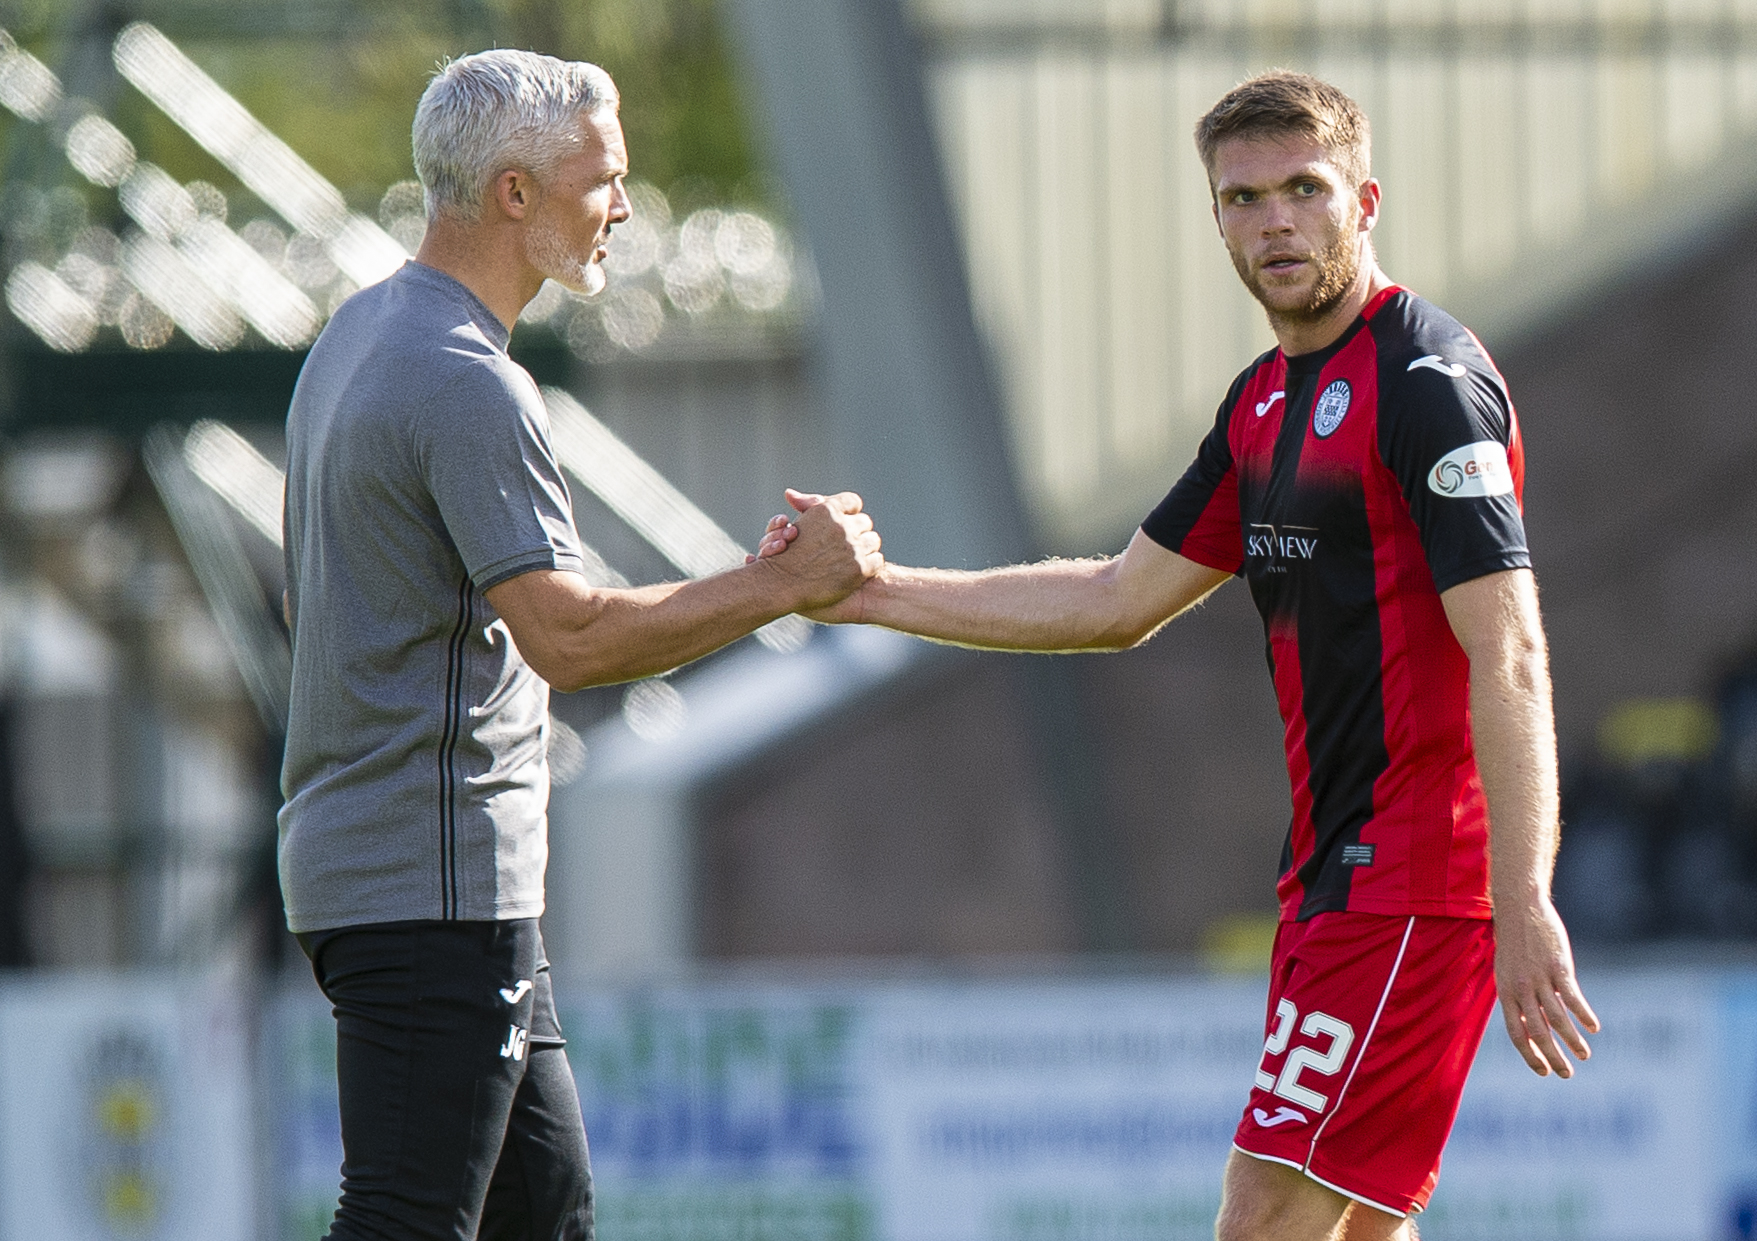 St Mirren's Marcus Fraser vows to learn from Queens' quick start